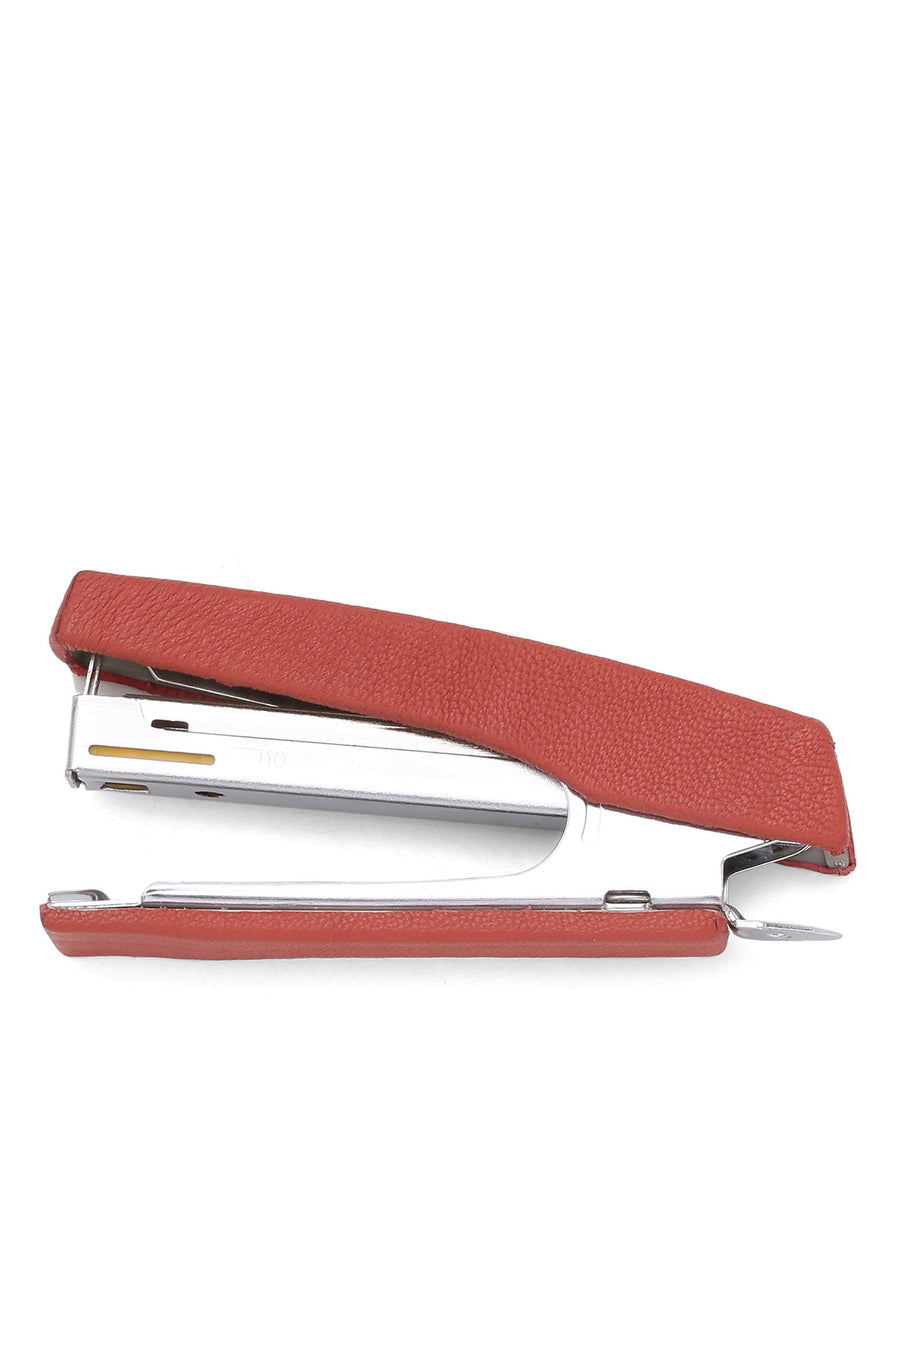 THE POLKA: LEATHER CLAD STAPLER